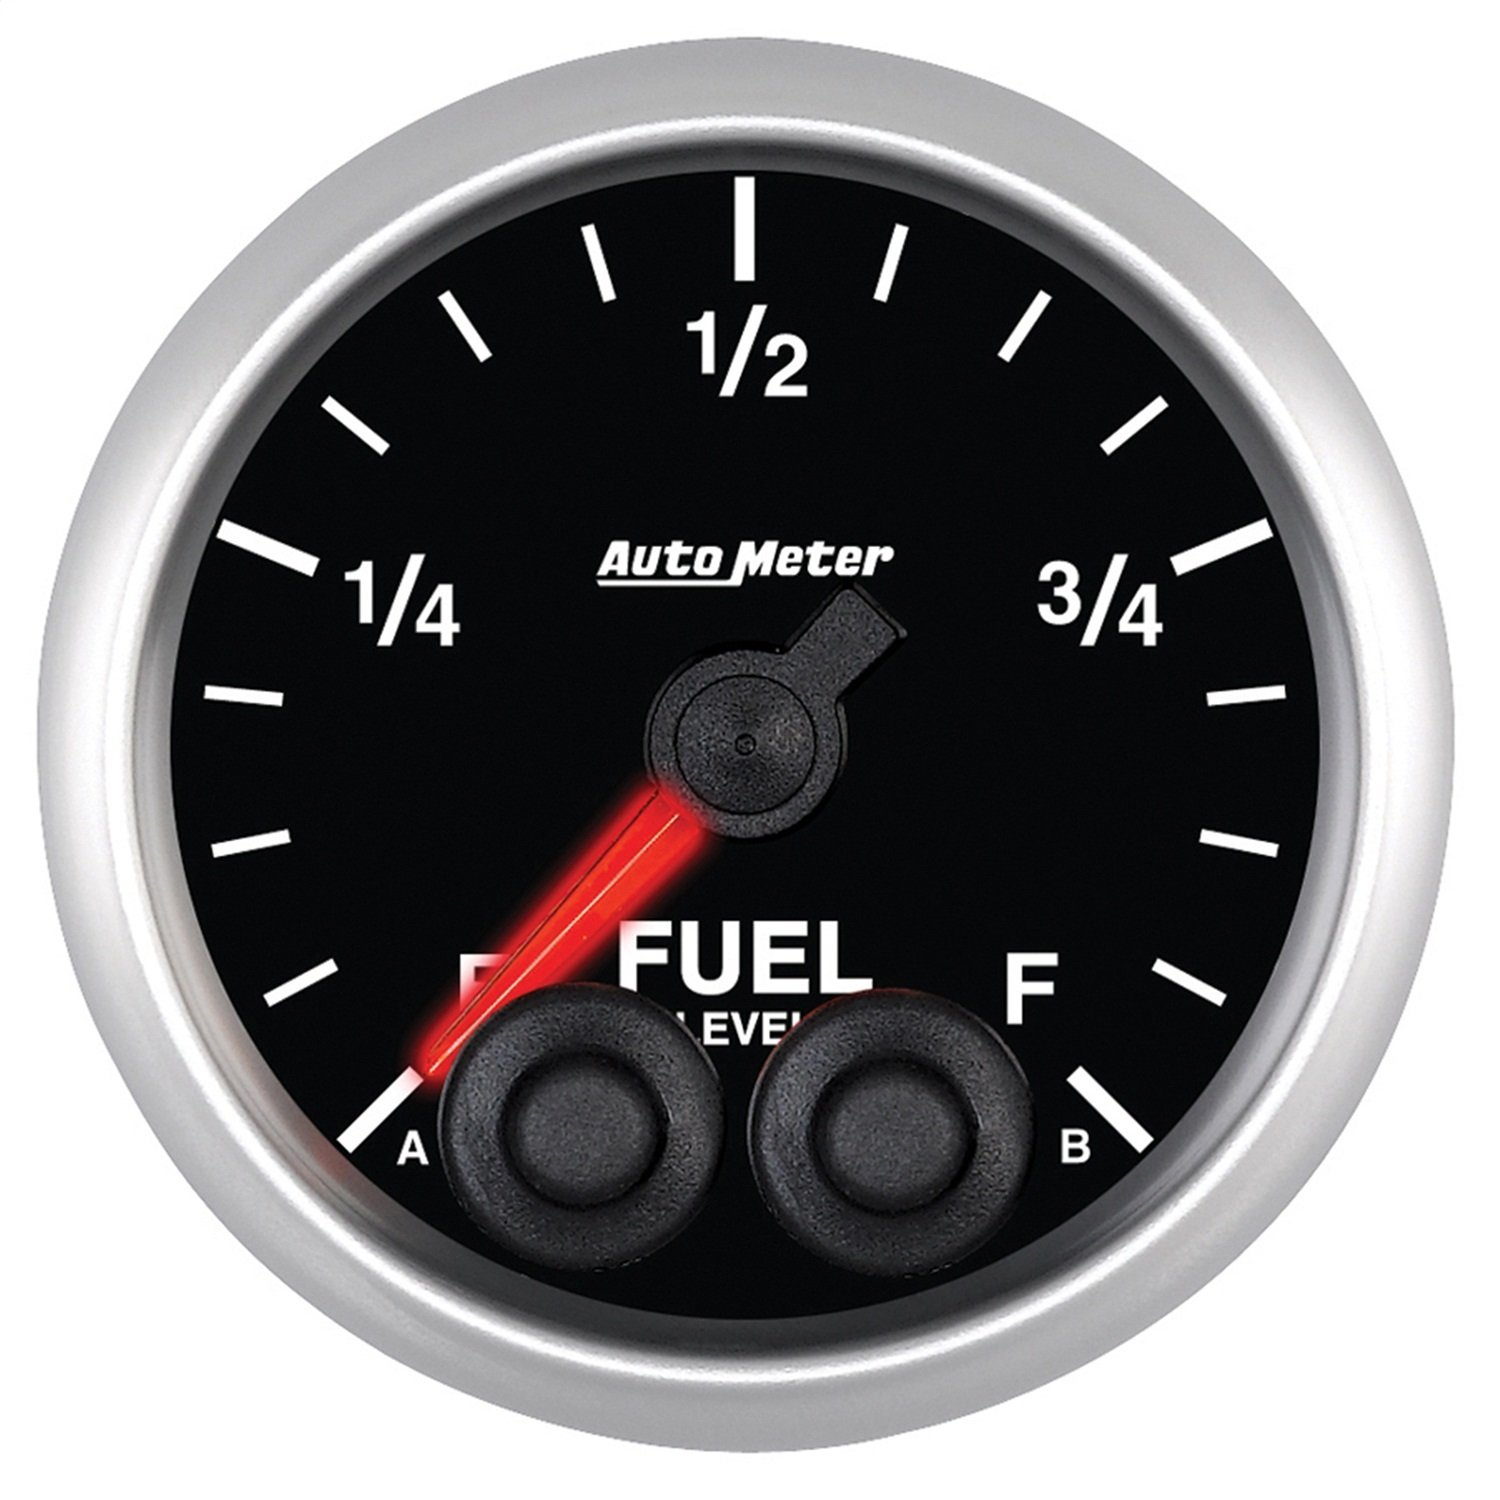 Auto Meter 5609 Elite 2-1/16'' Programmable Fuel Level Gauge